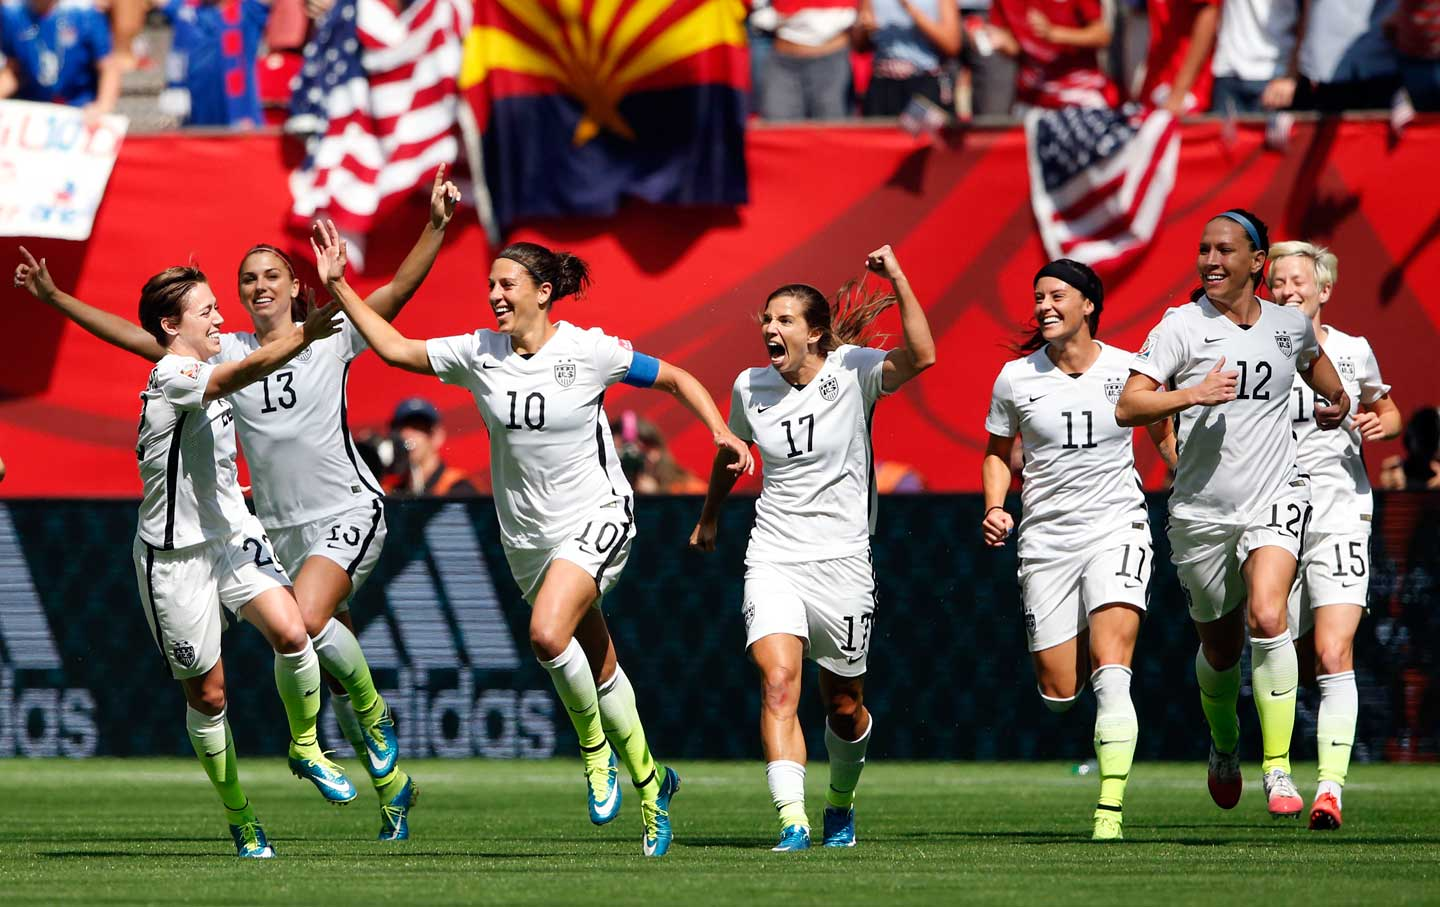 US Women's Soccer Is More Popular Than Men's, but the